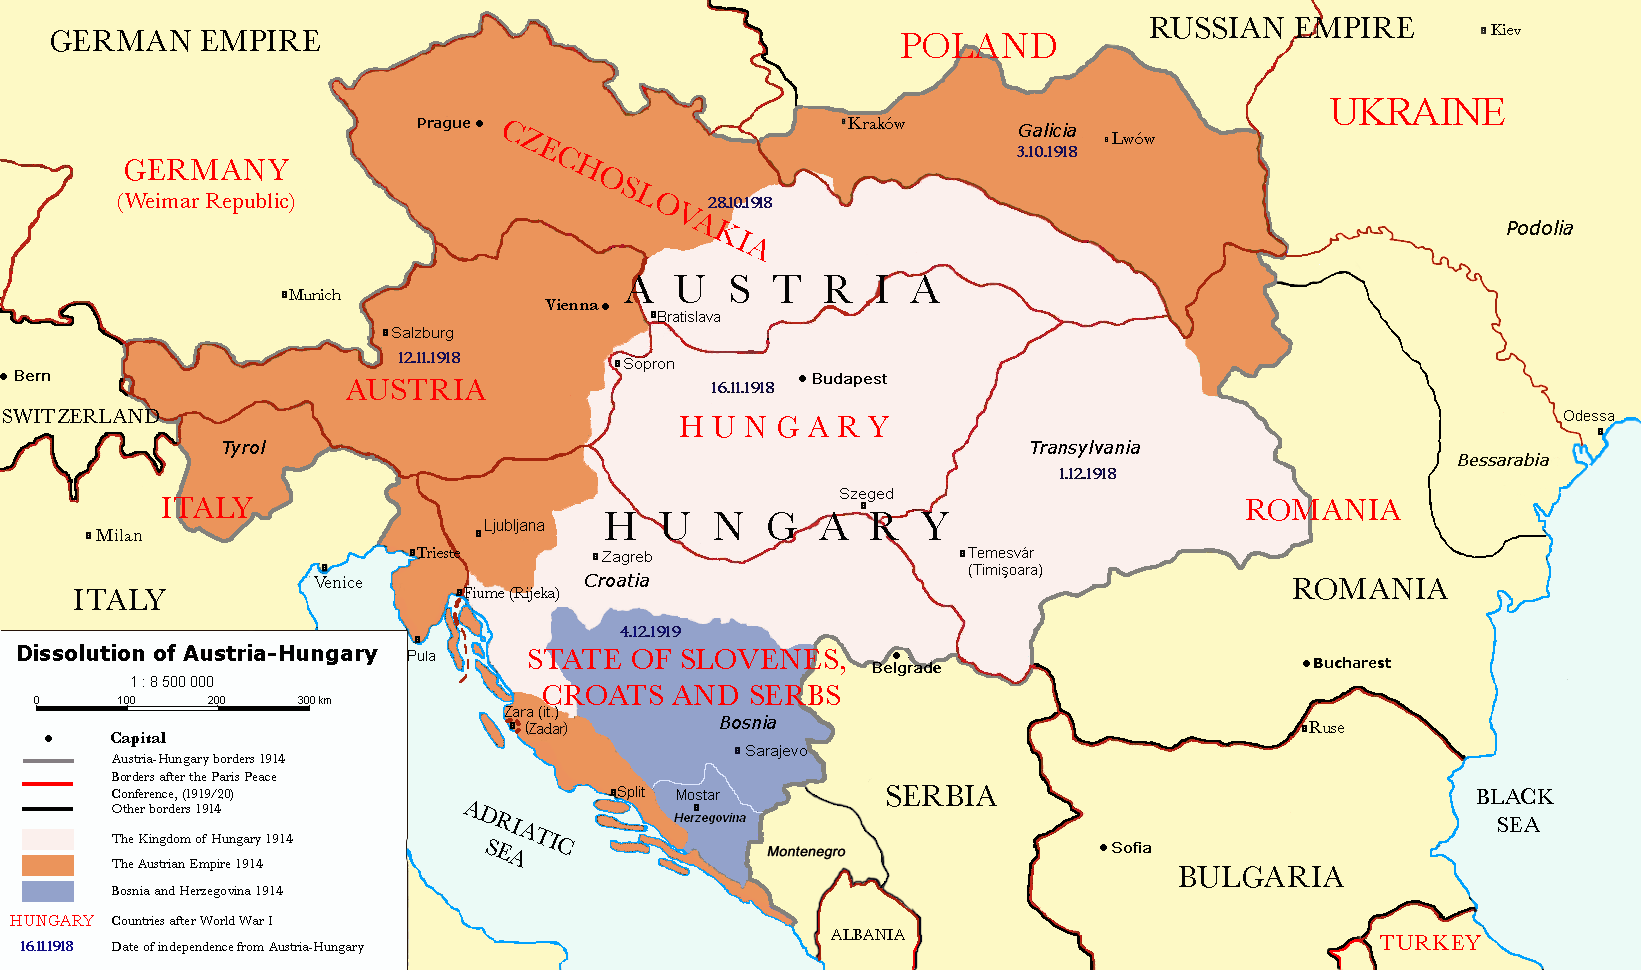 the treaty of versailles the treaty of neuilly and the treaty of saint germaine were ineffective in  Neuilly, treaty of (nöyē`), 1919, peace treaty concluded between the allies and bulgaria after world war i it was signed at neuilly-sur-seine, france bulgaria ceded part.